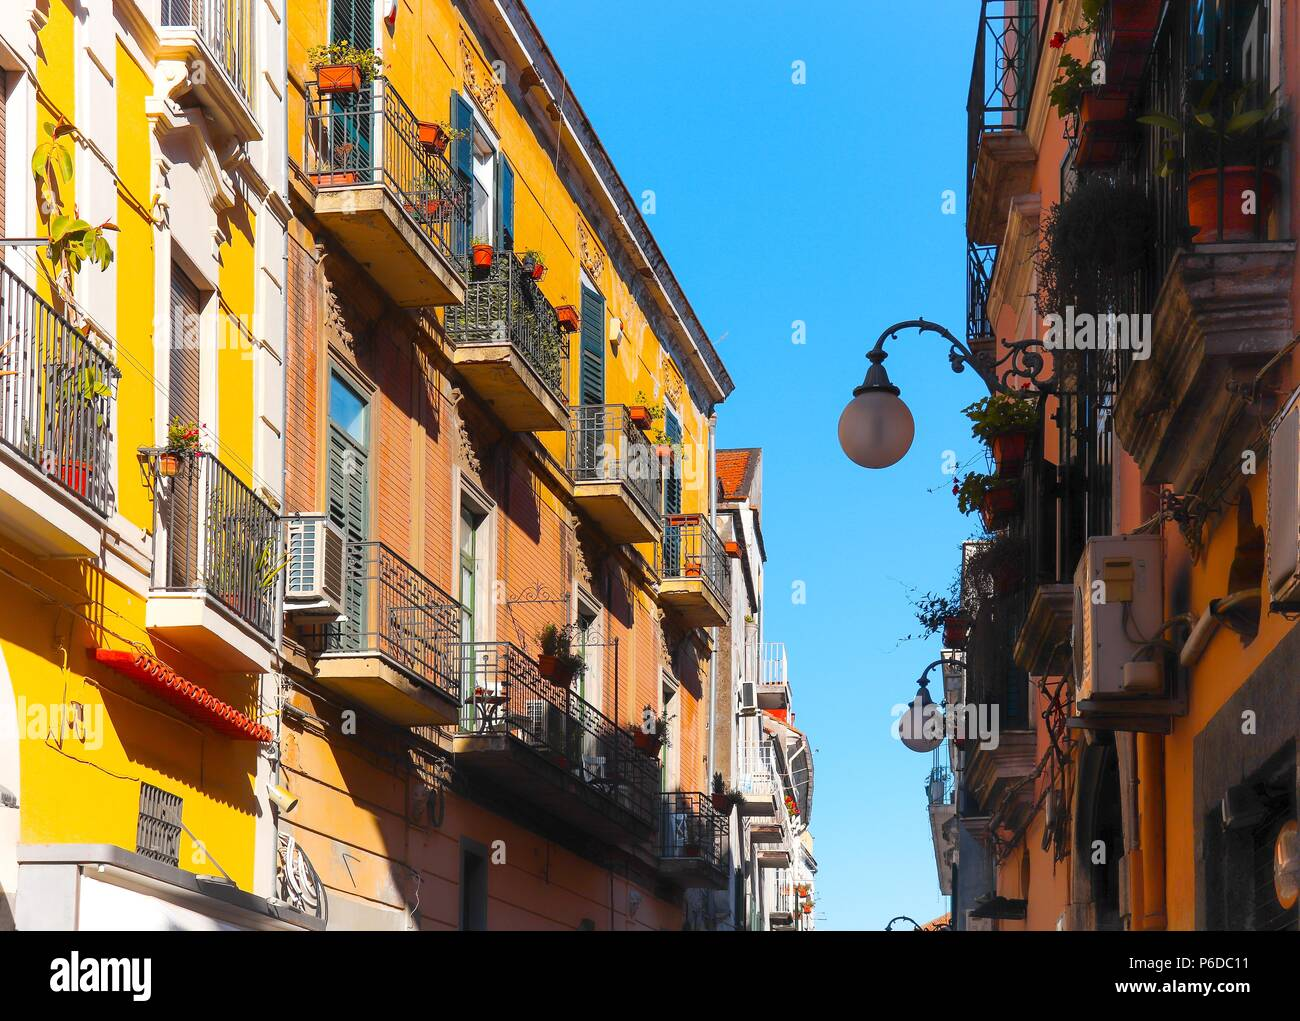 Italian narrow street with colorful houses, street light and blue sky between on sunny summer day. Vietri sul Mare, South of Italy Stock Photo